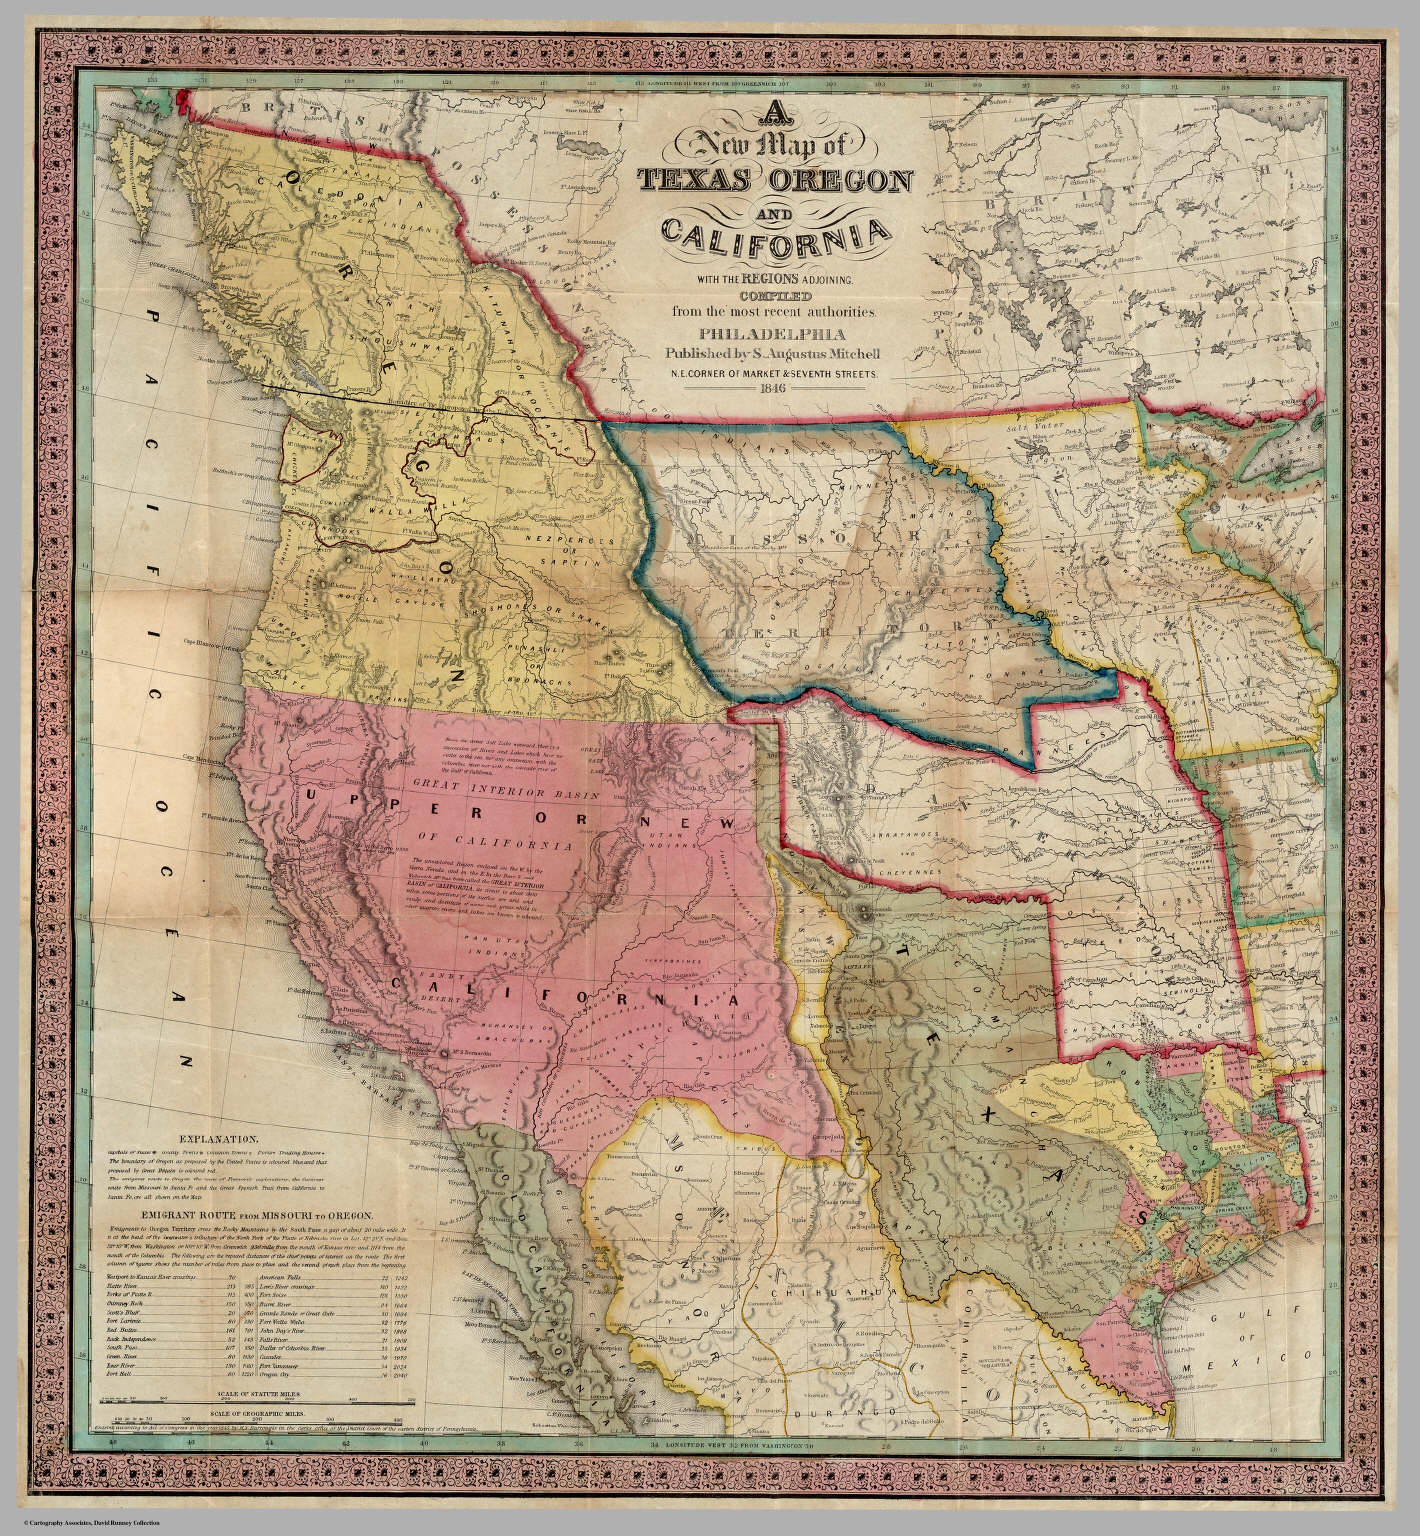 A New Map Of Texas Oregon And California With The Regions Adjoining - Texas Map 1846